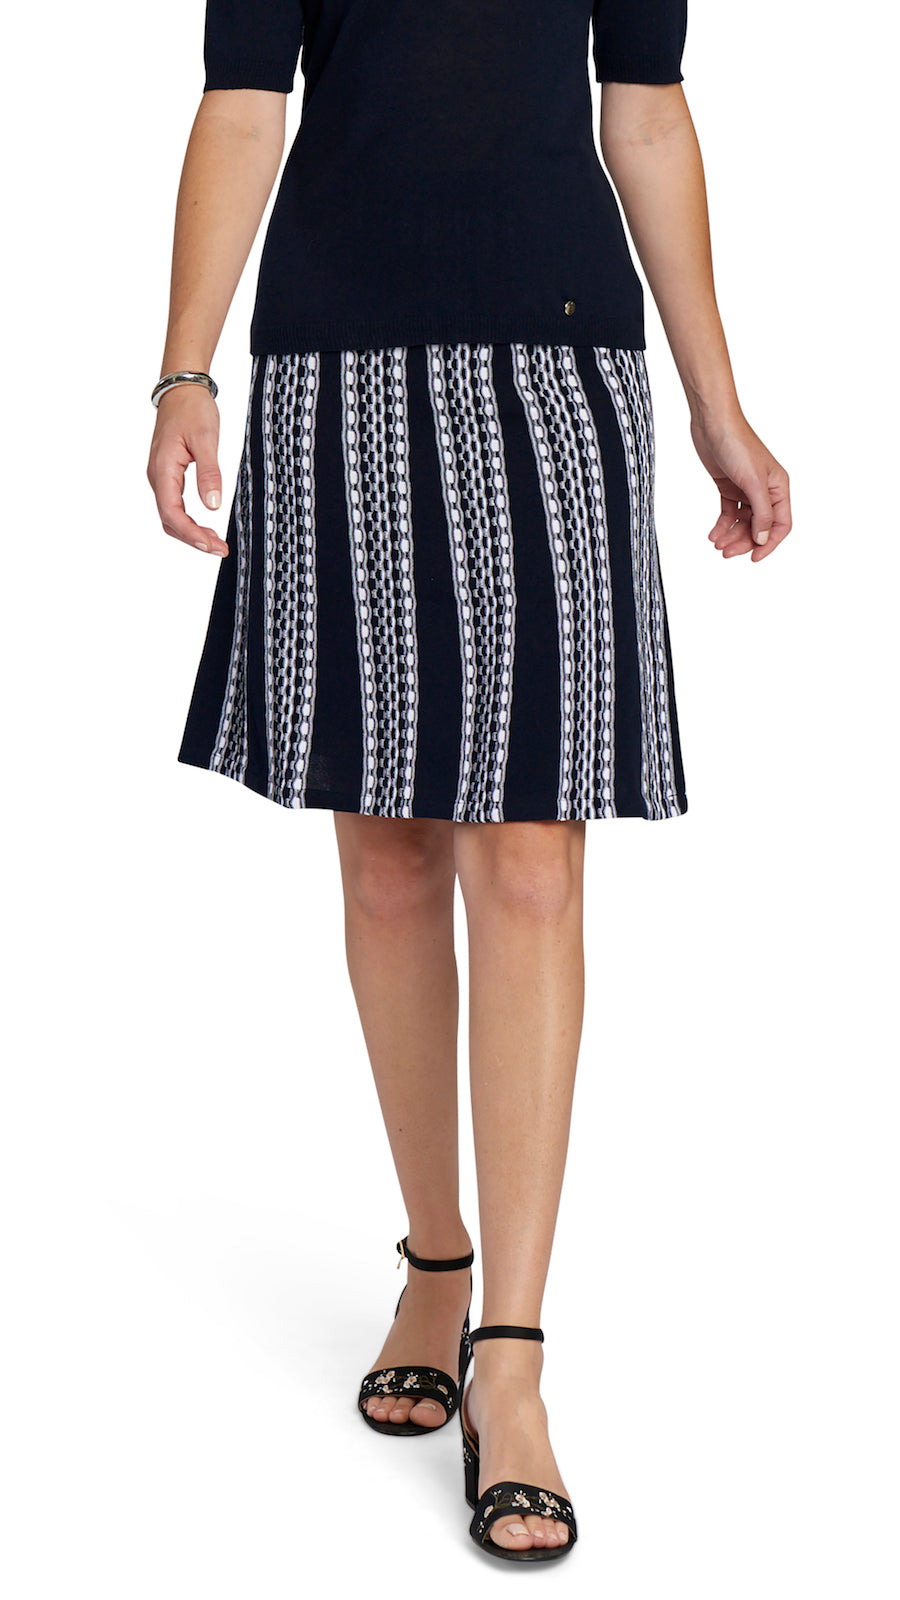 CONTEMPO Uma A-line Knitted Skirt, Navy/White